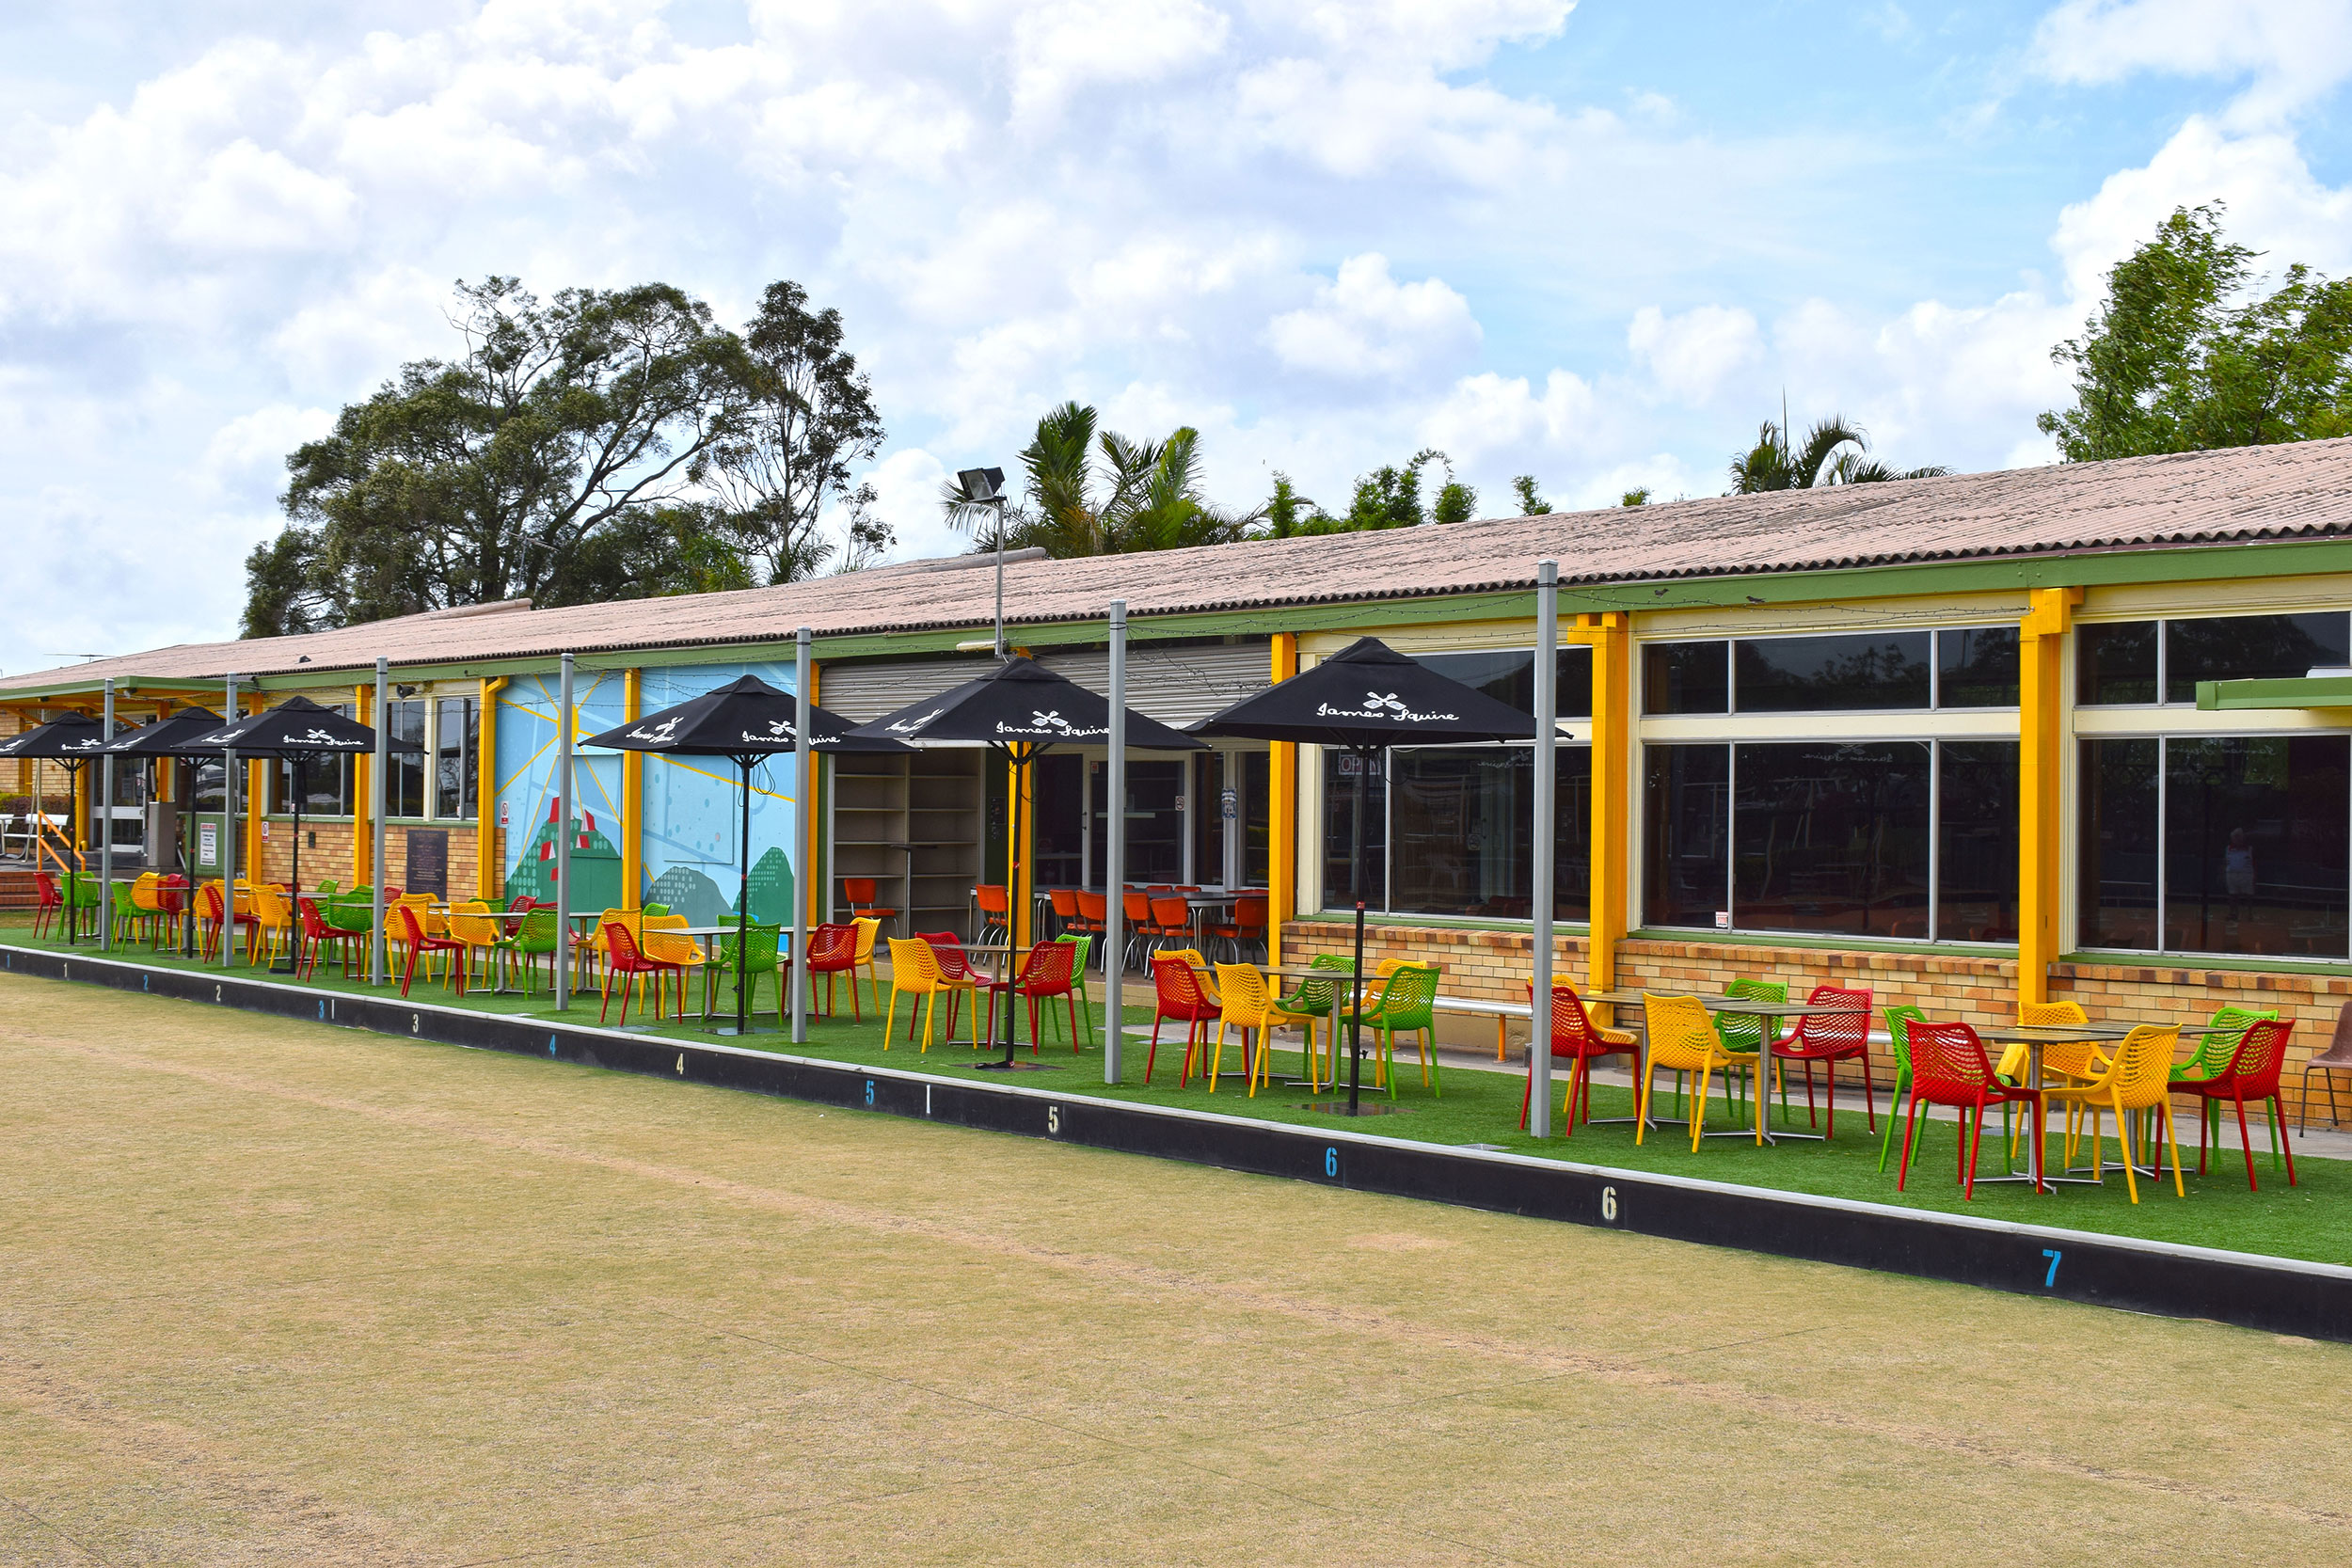 Name : Camp Hill Bowls Club